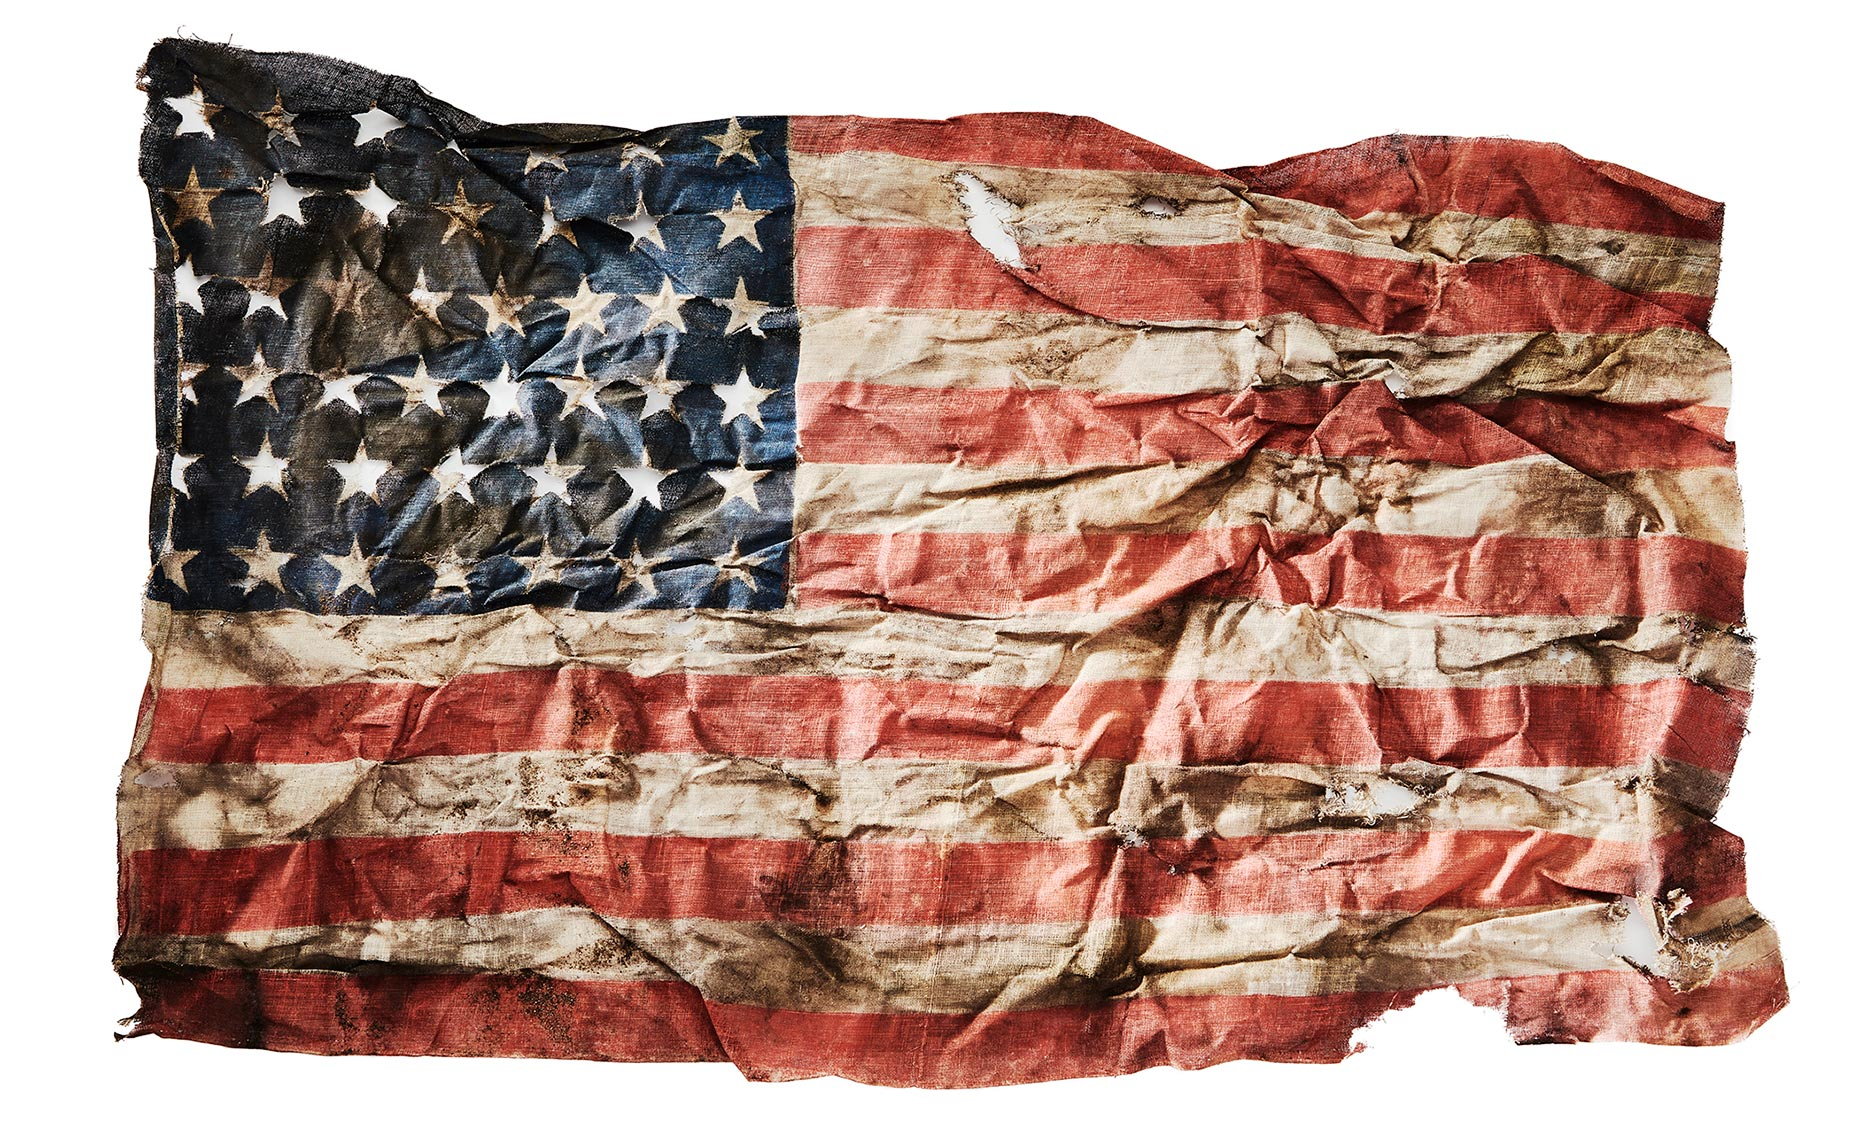 Jeff-McLain-Photography-Flag-9